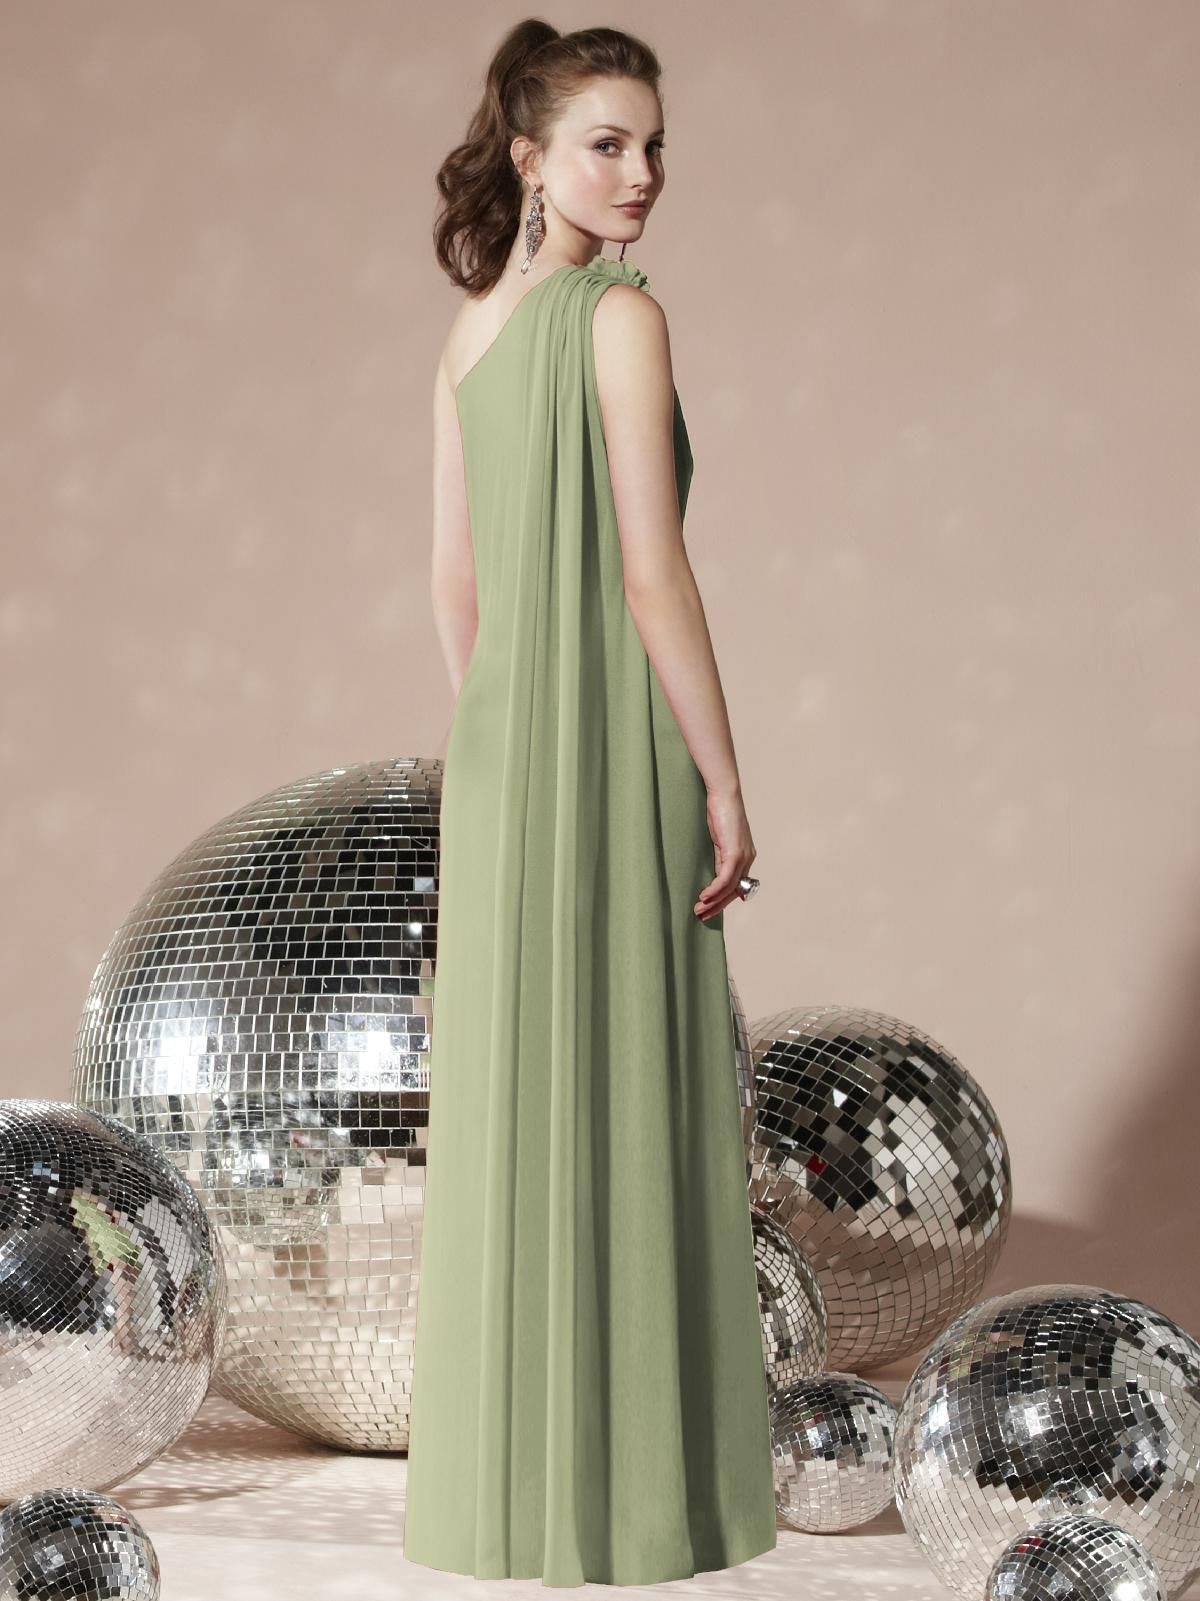 Secondary sponsor secondary sponsors pinterest find your perfect bridesmaid dress in dessys amazing range of styles colors and sizes matching flower girl and junior bridesmaid dresses too ombrellifo Images